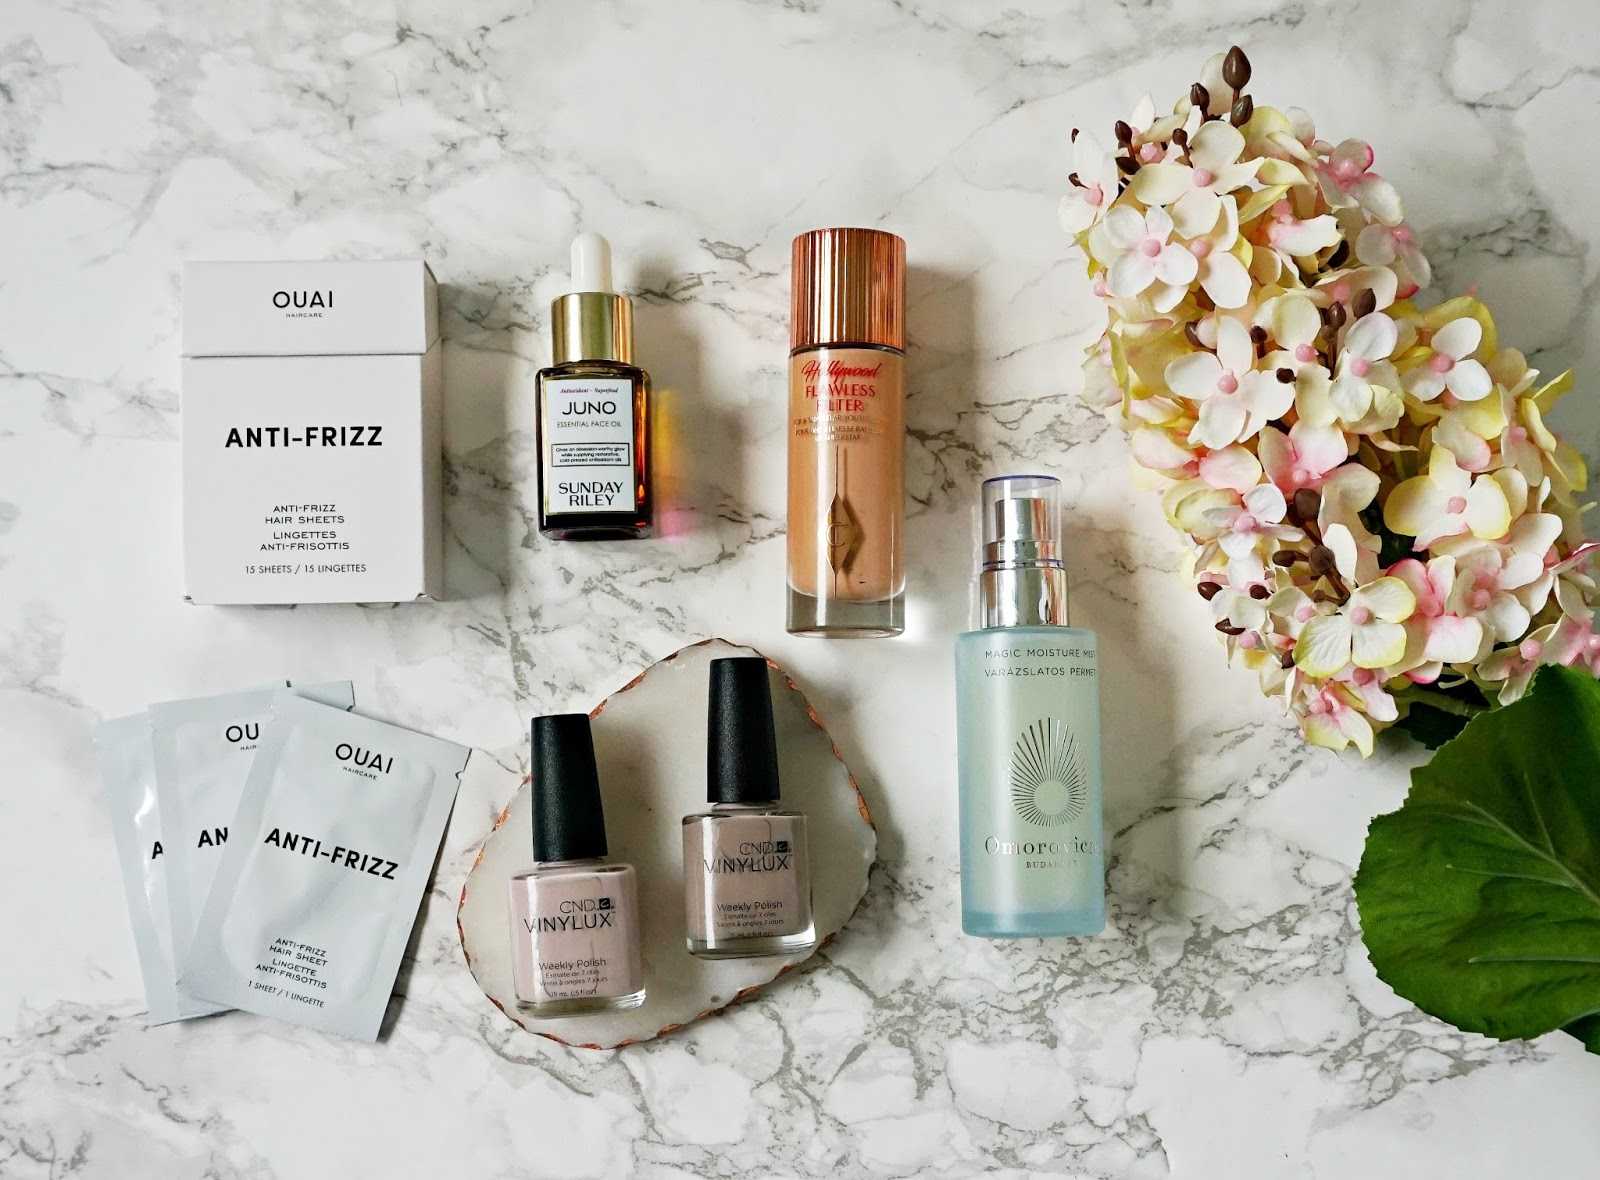 Ouai Frizz Sheet Review, Charlotte Tilbury Flawless Filter Review, Sunday Riley Juno Review, Omorovicza Magic Moisture Mist review